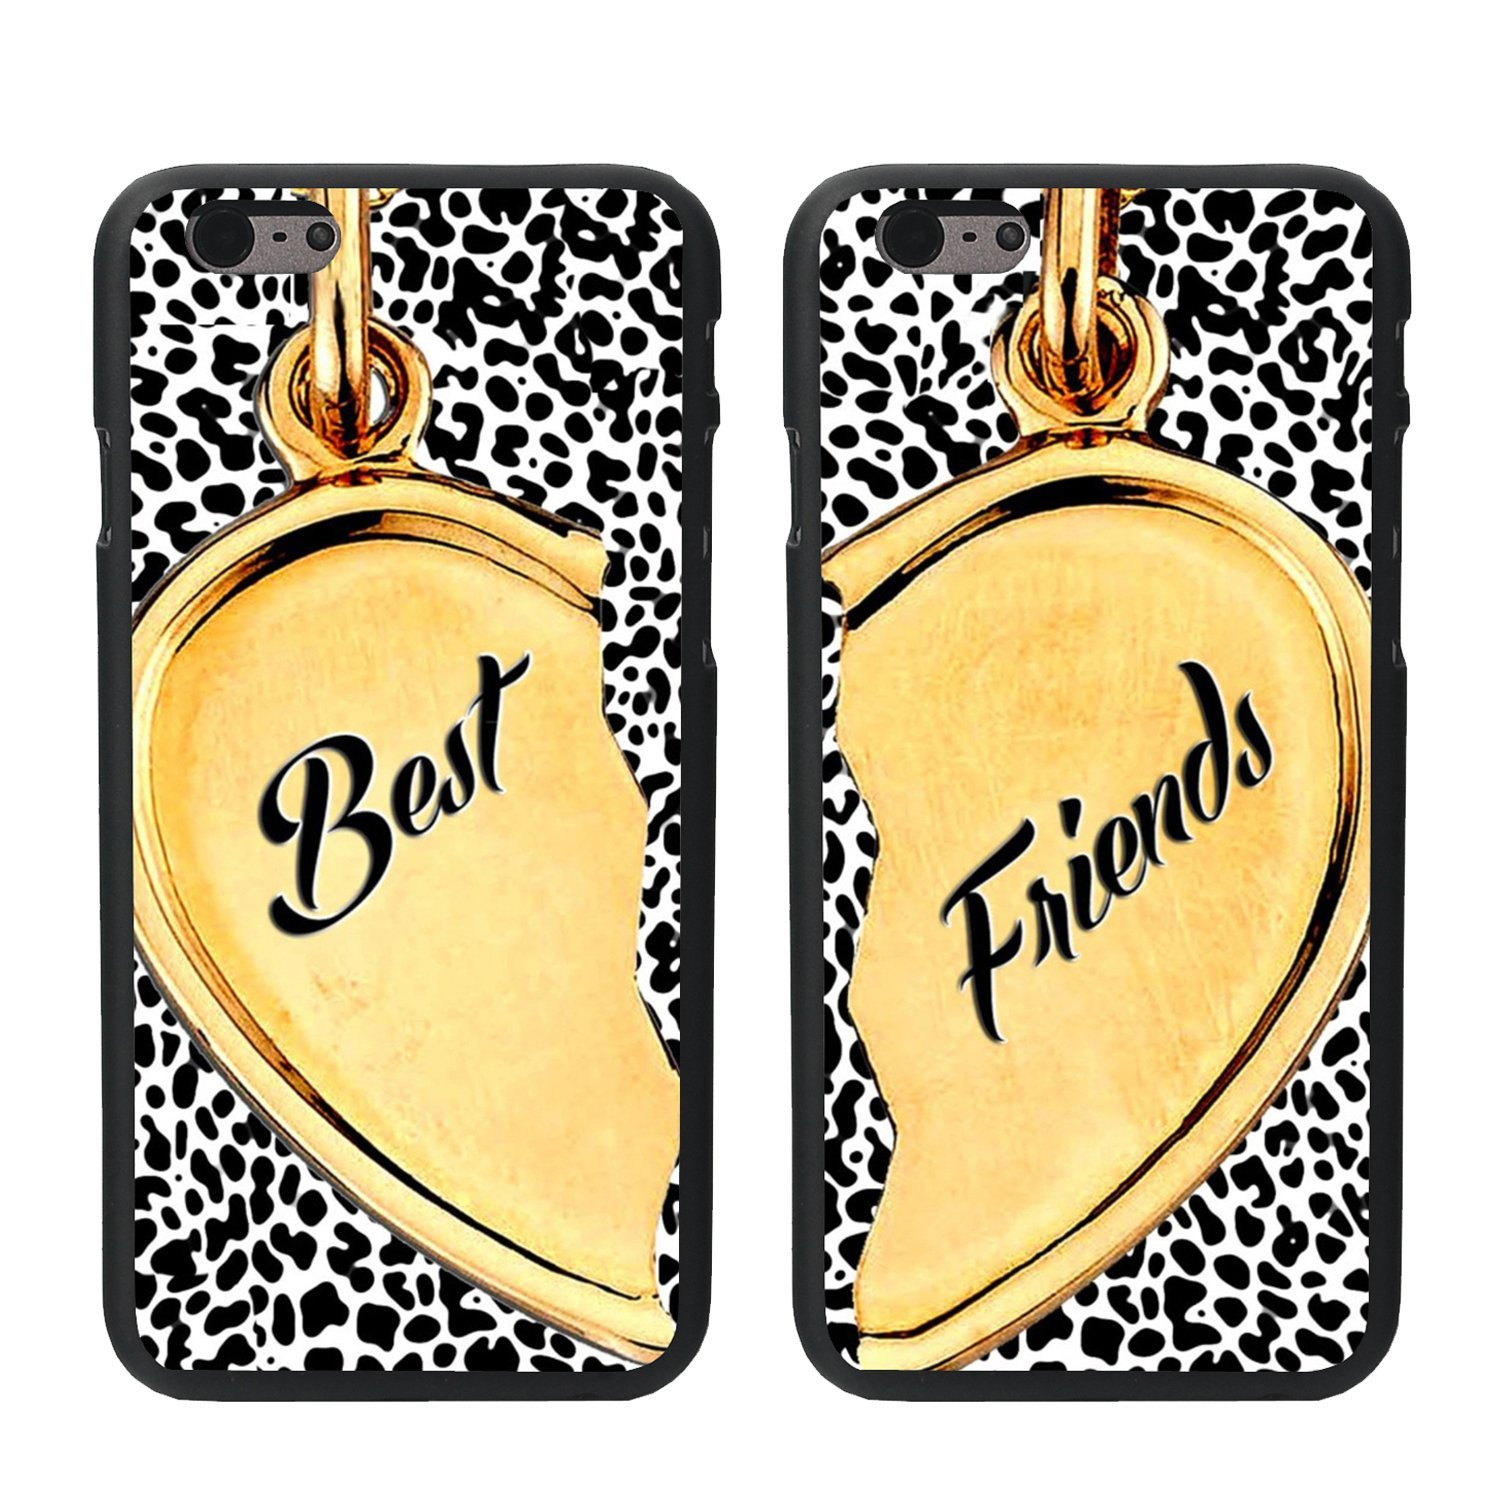 amazoncom vamvaz 2 x cute heart design lovers couple best friends tpu frame hard back case cover skin for 55 iphone 6 plus cell phones accessories